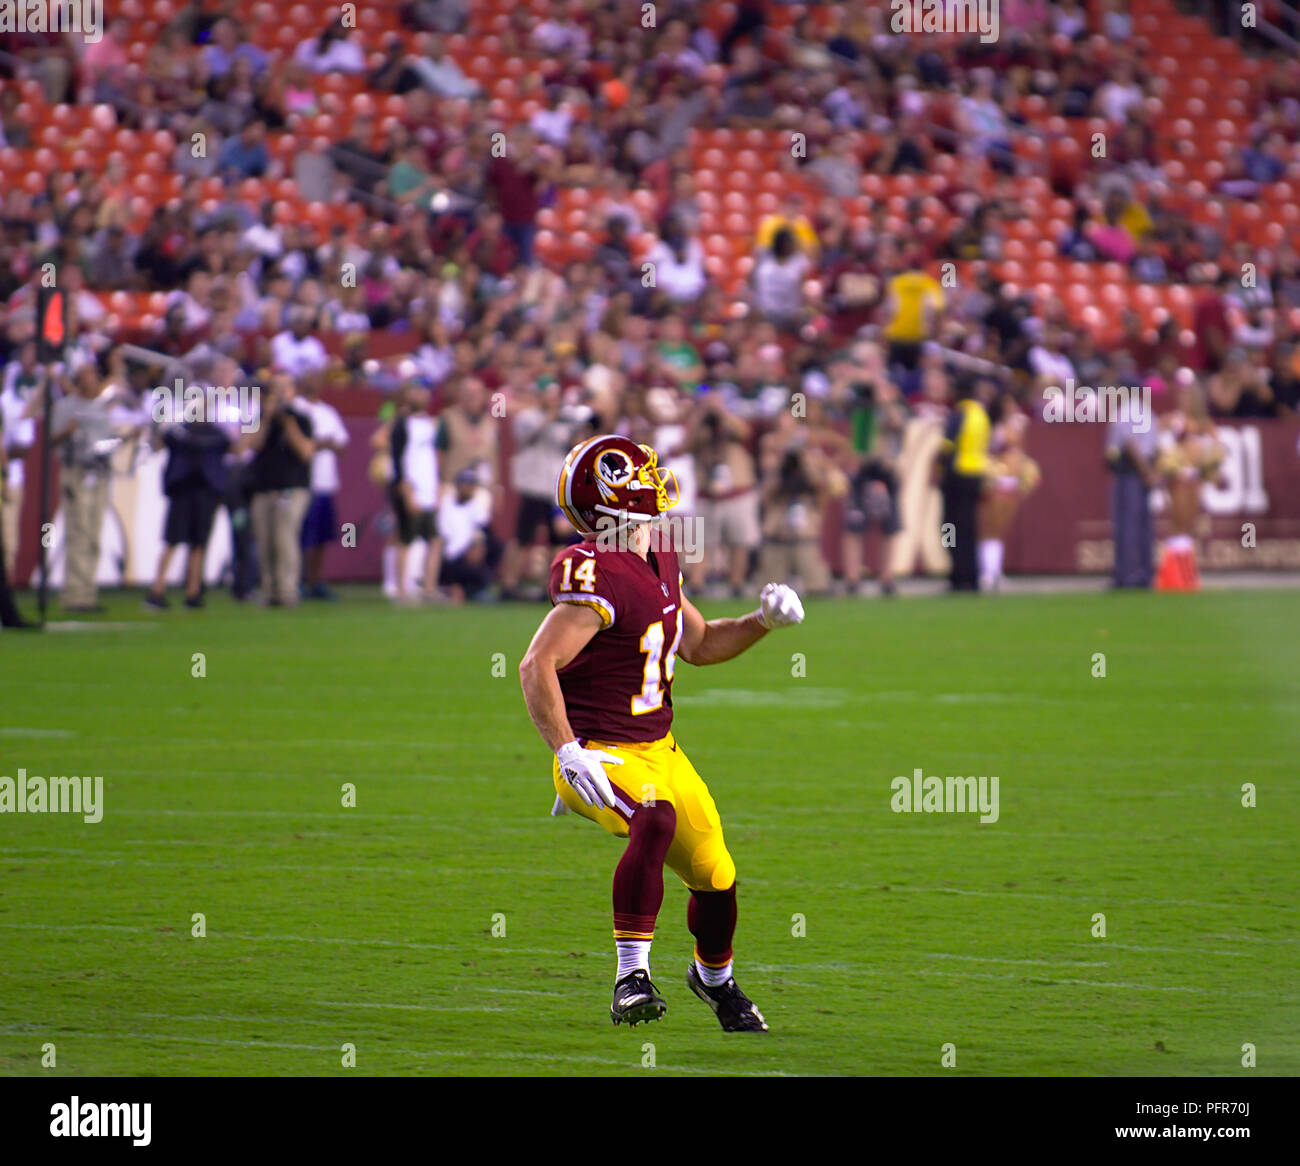 Redskins New Stadium: Washington Redskins Stadium Stock Photos & Washington